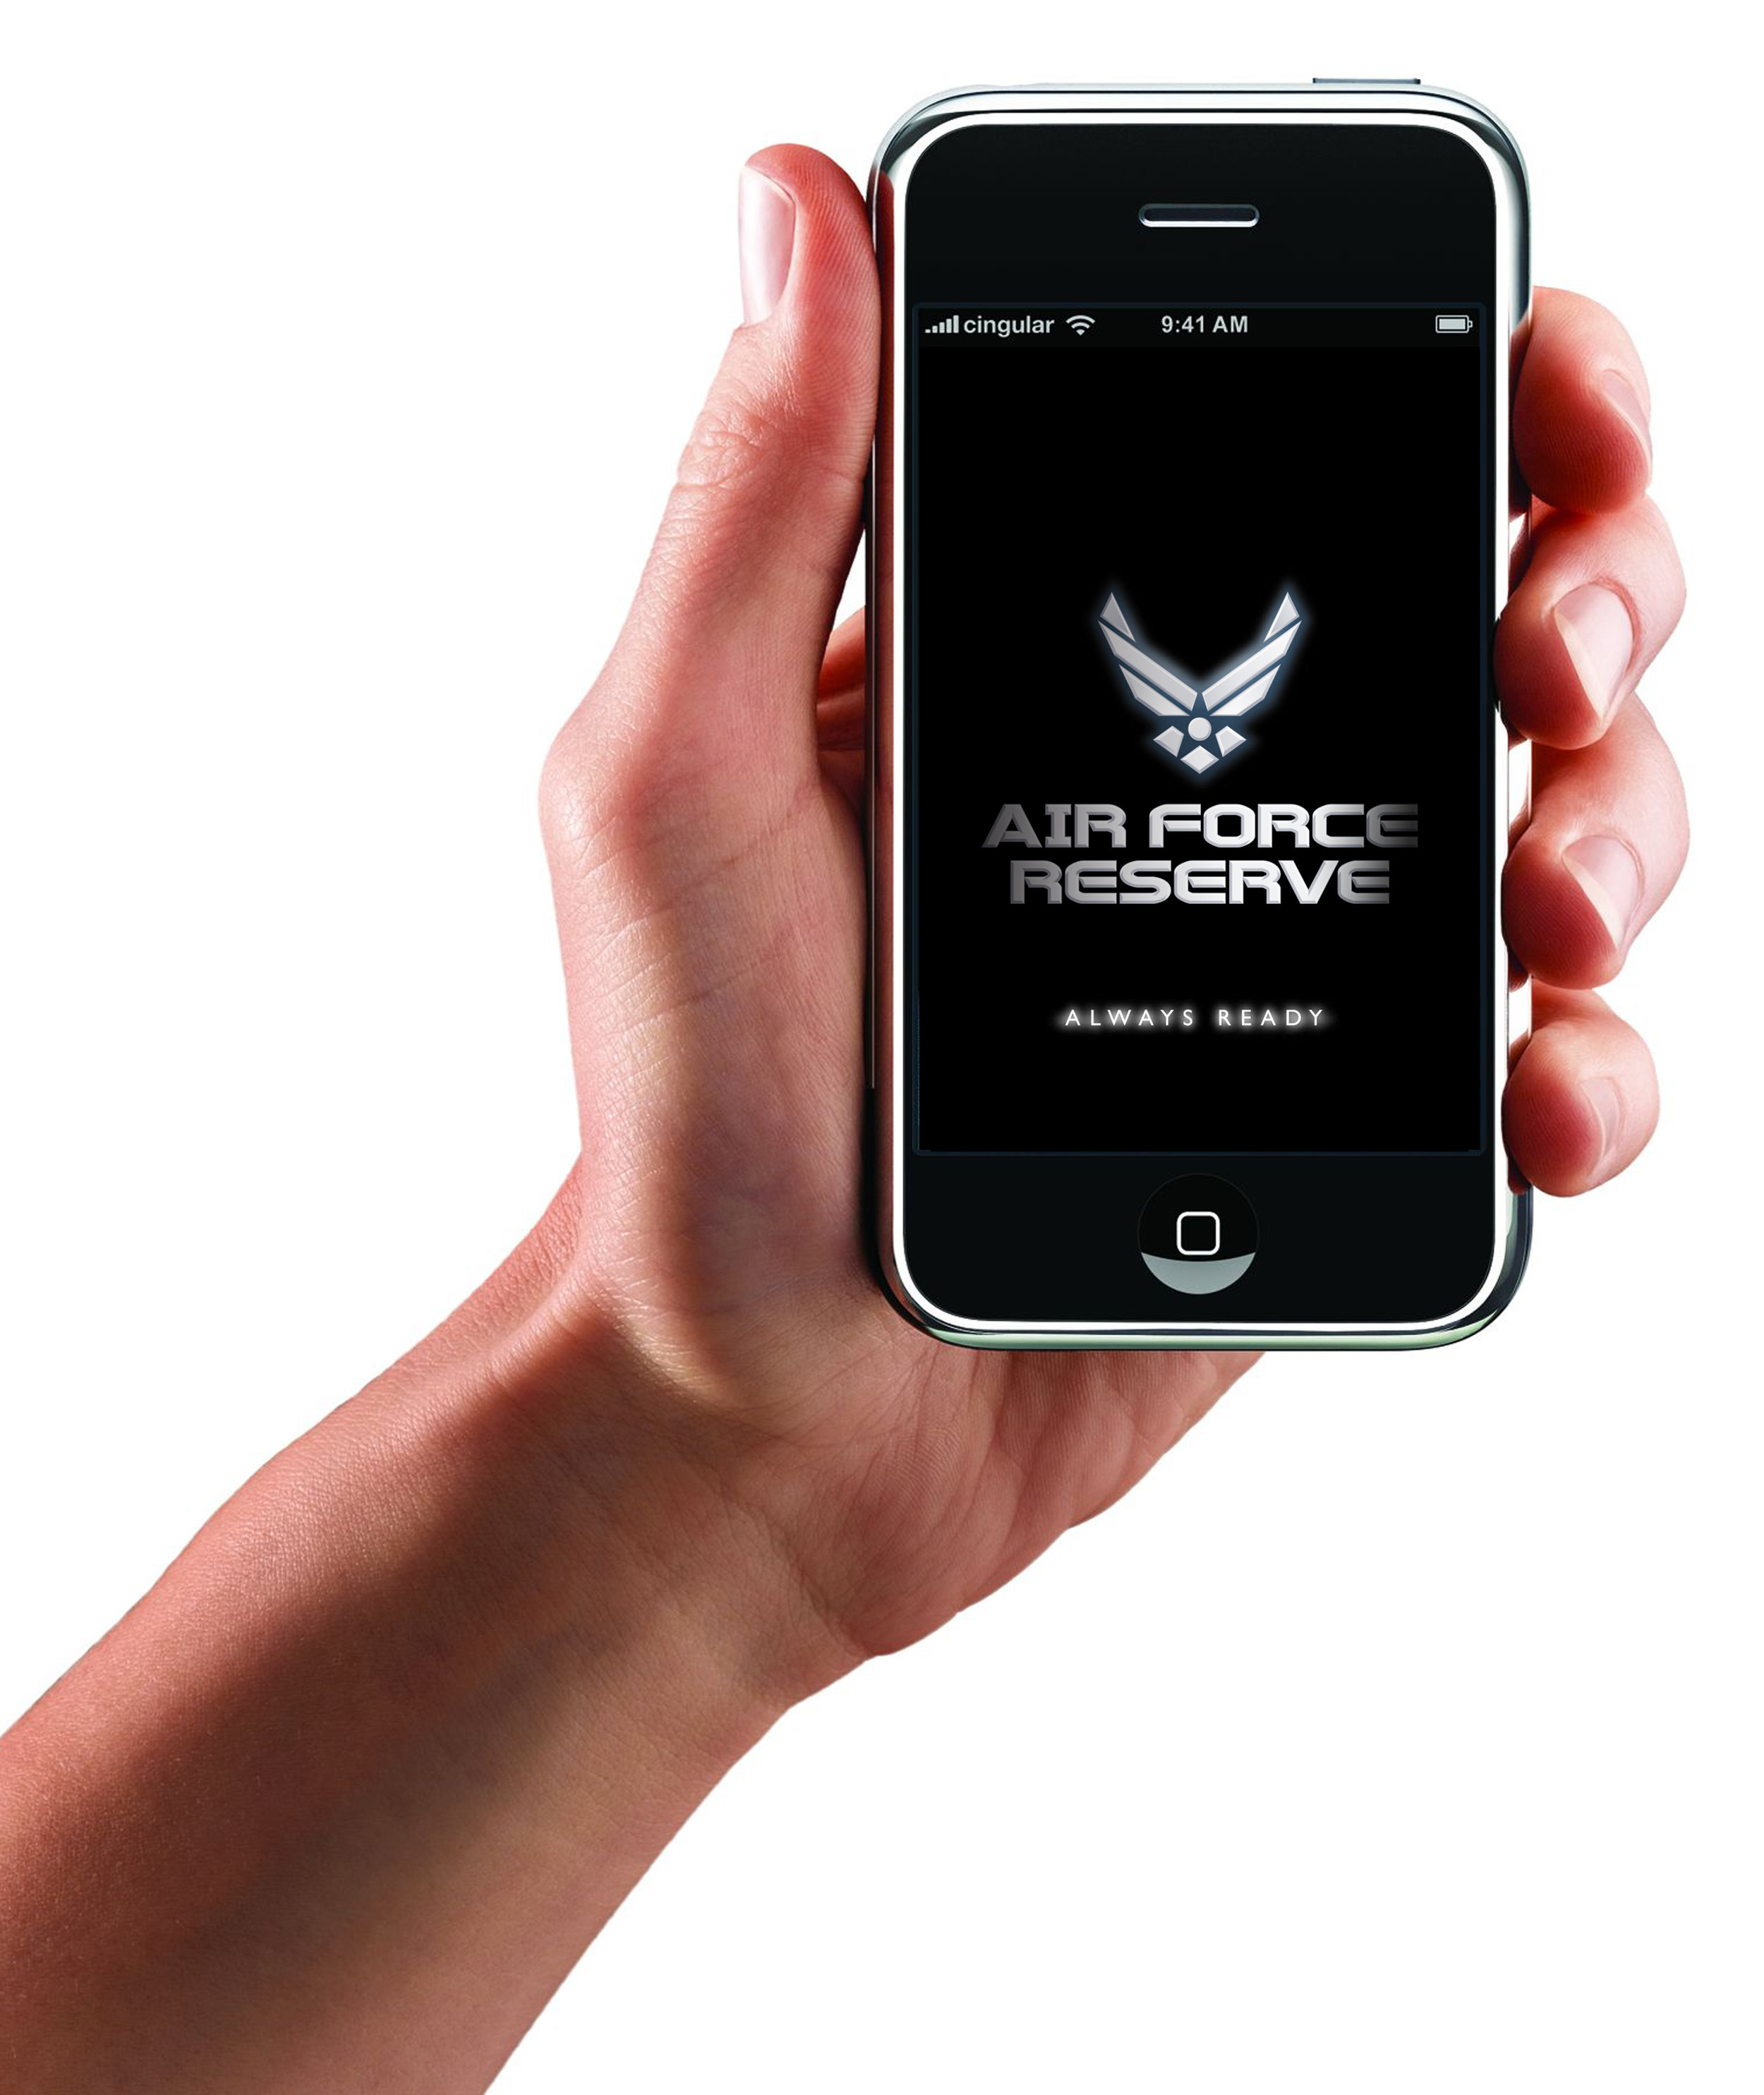 Air Force Reserve Mobile App